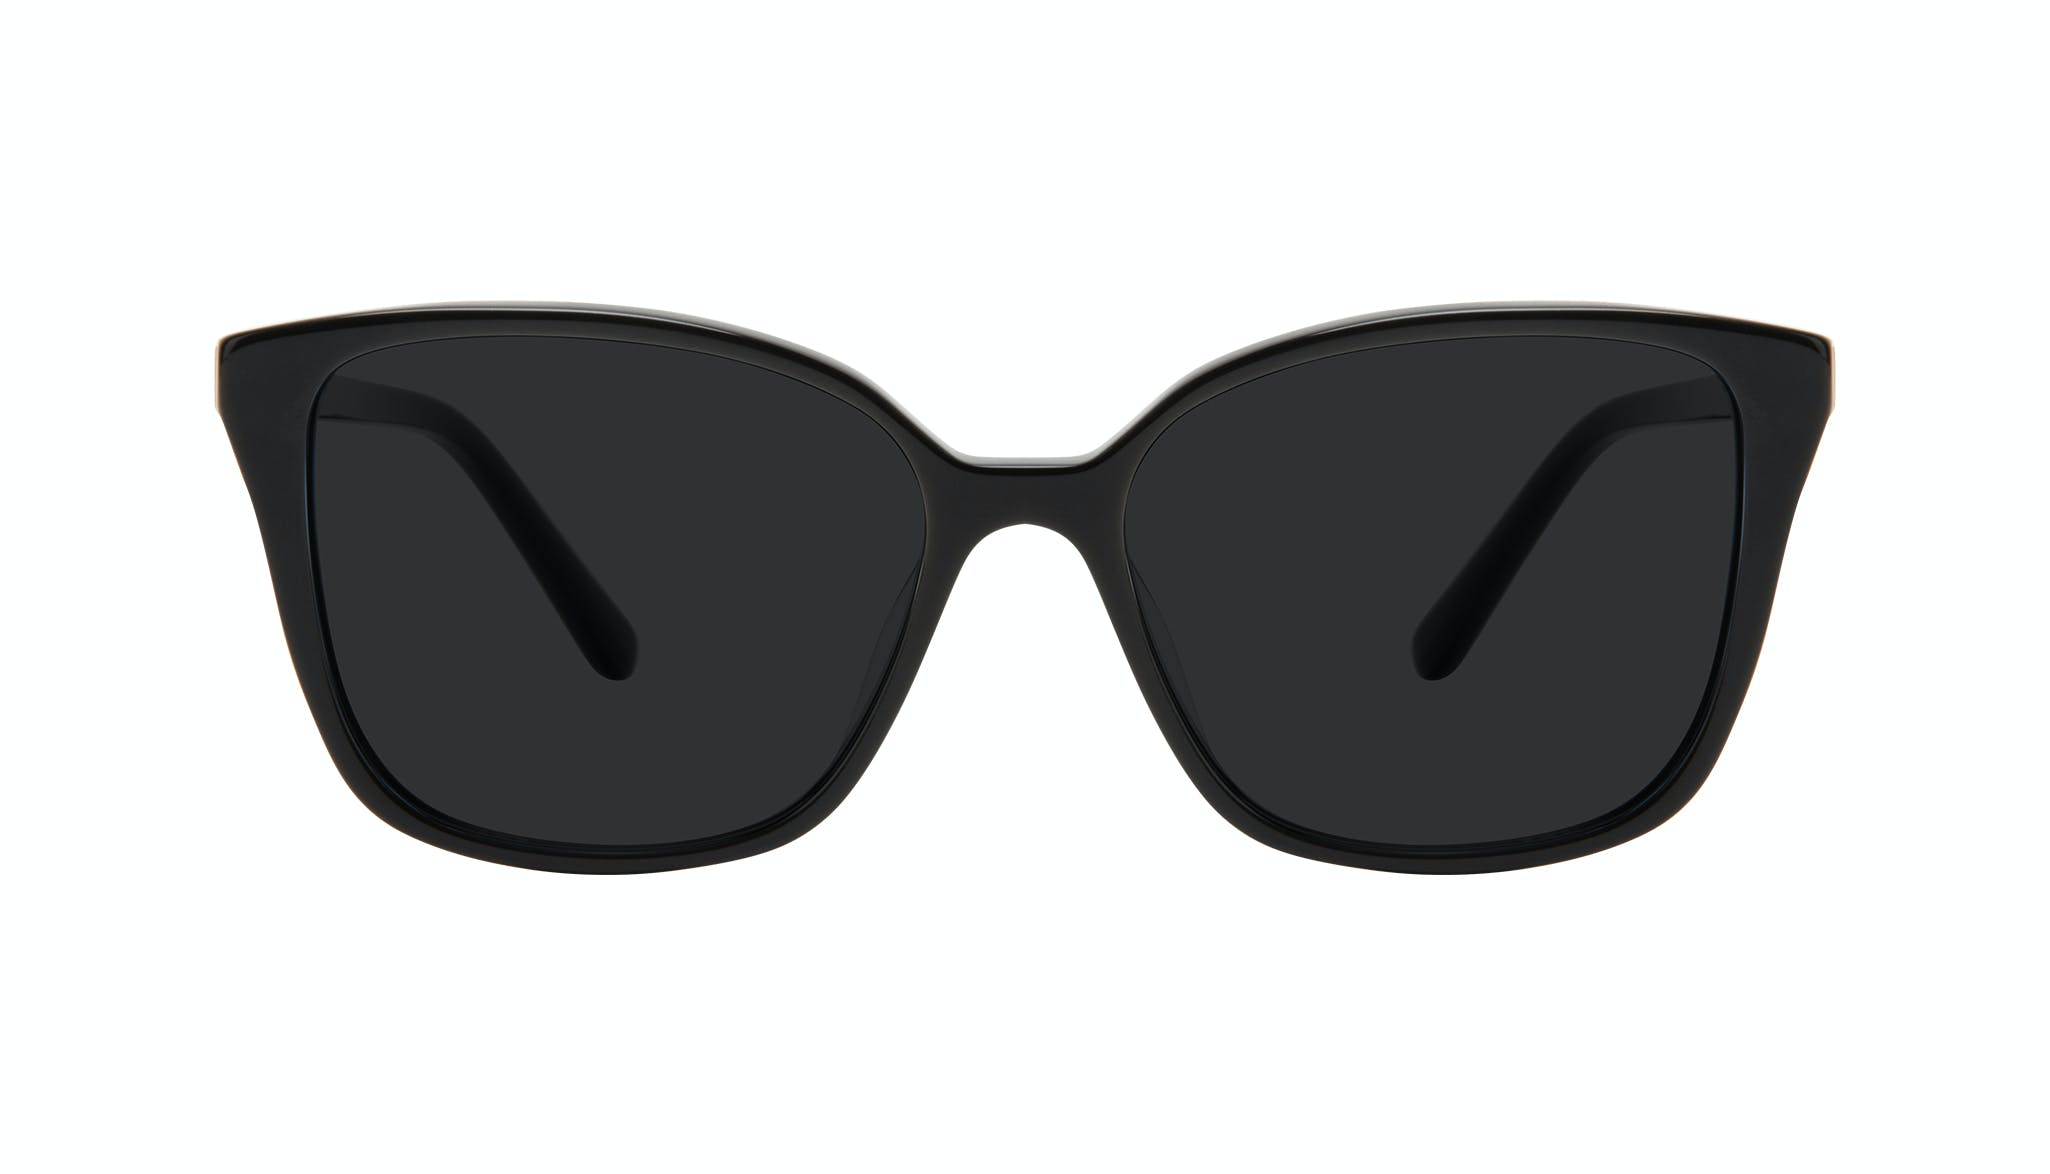 Affordable Fashion Glasses Square Sunglasses Women Only Onyx Front